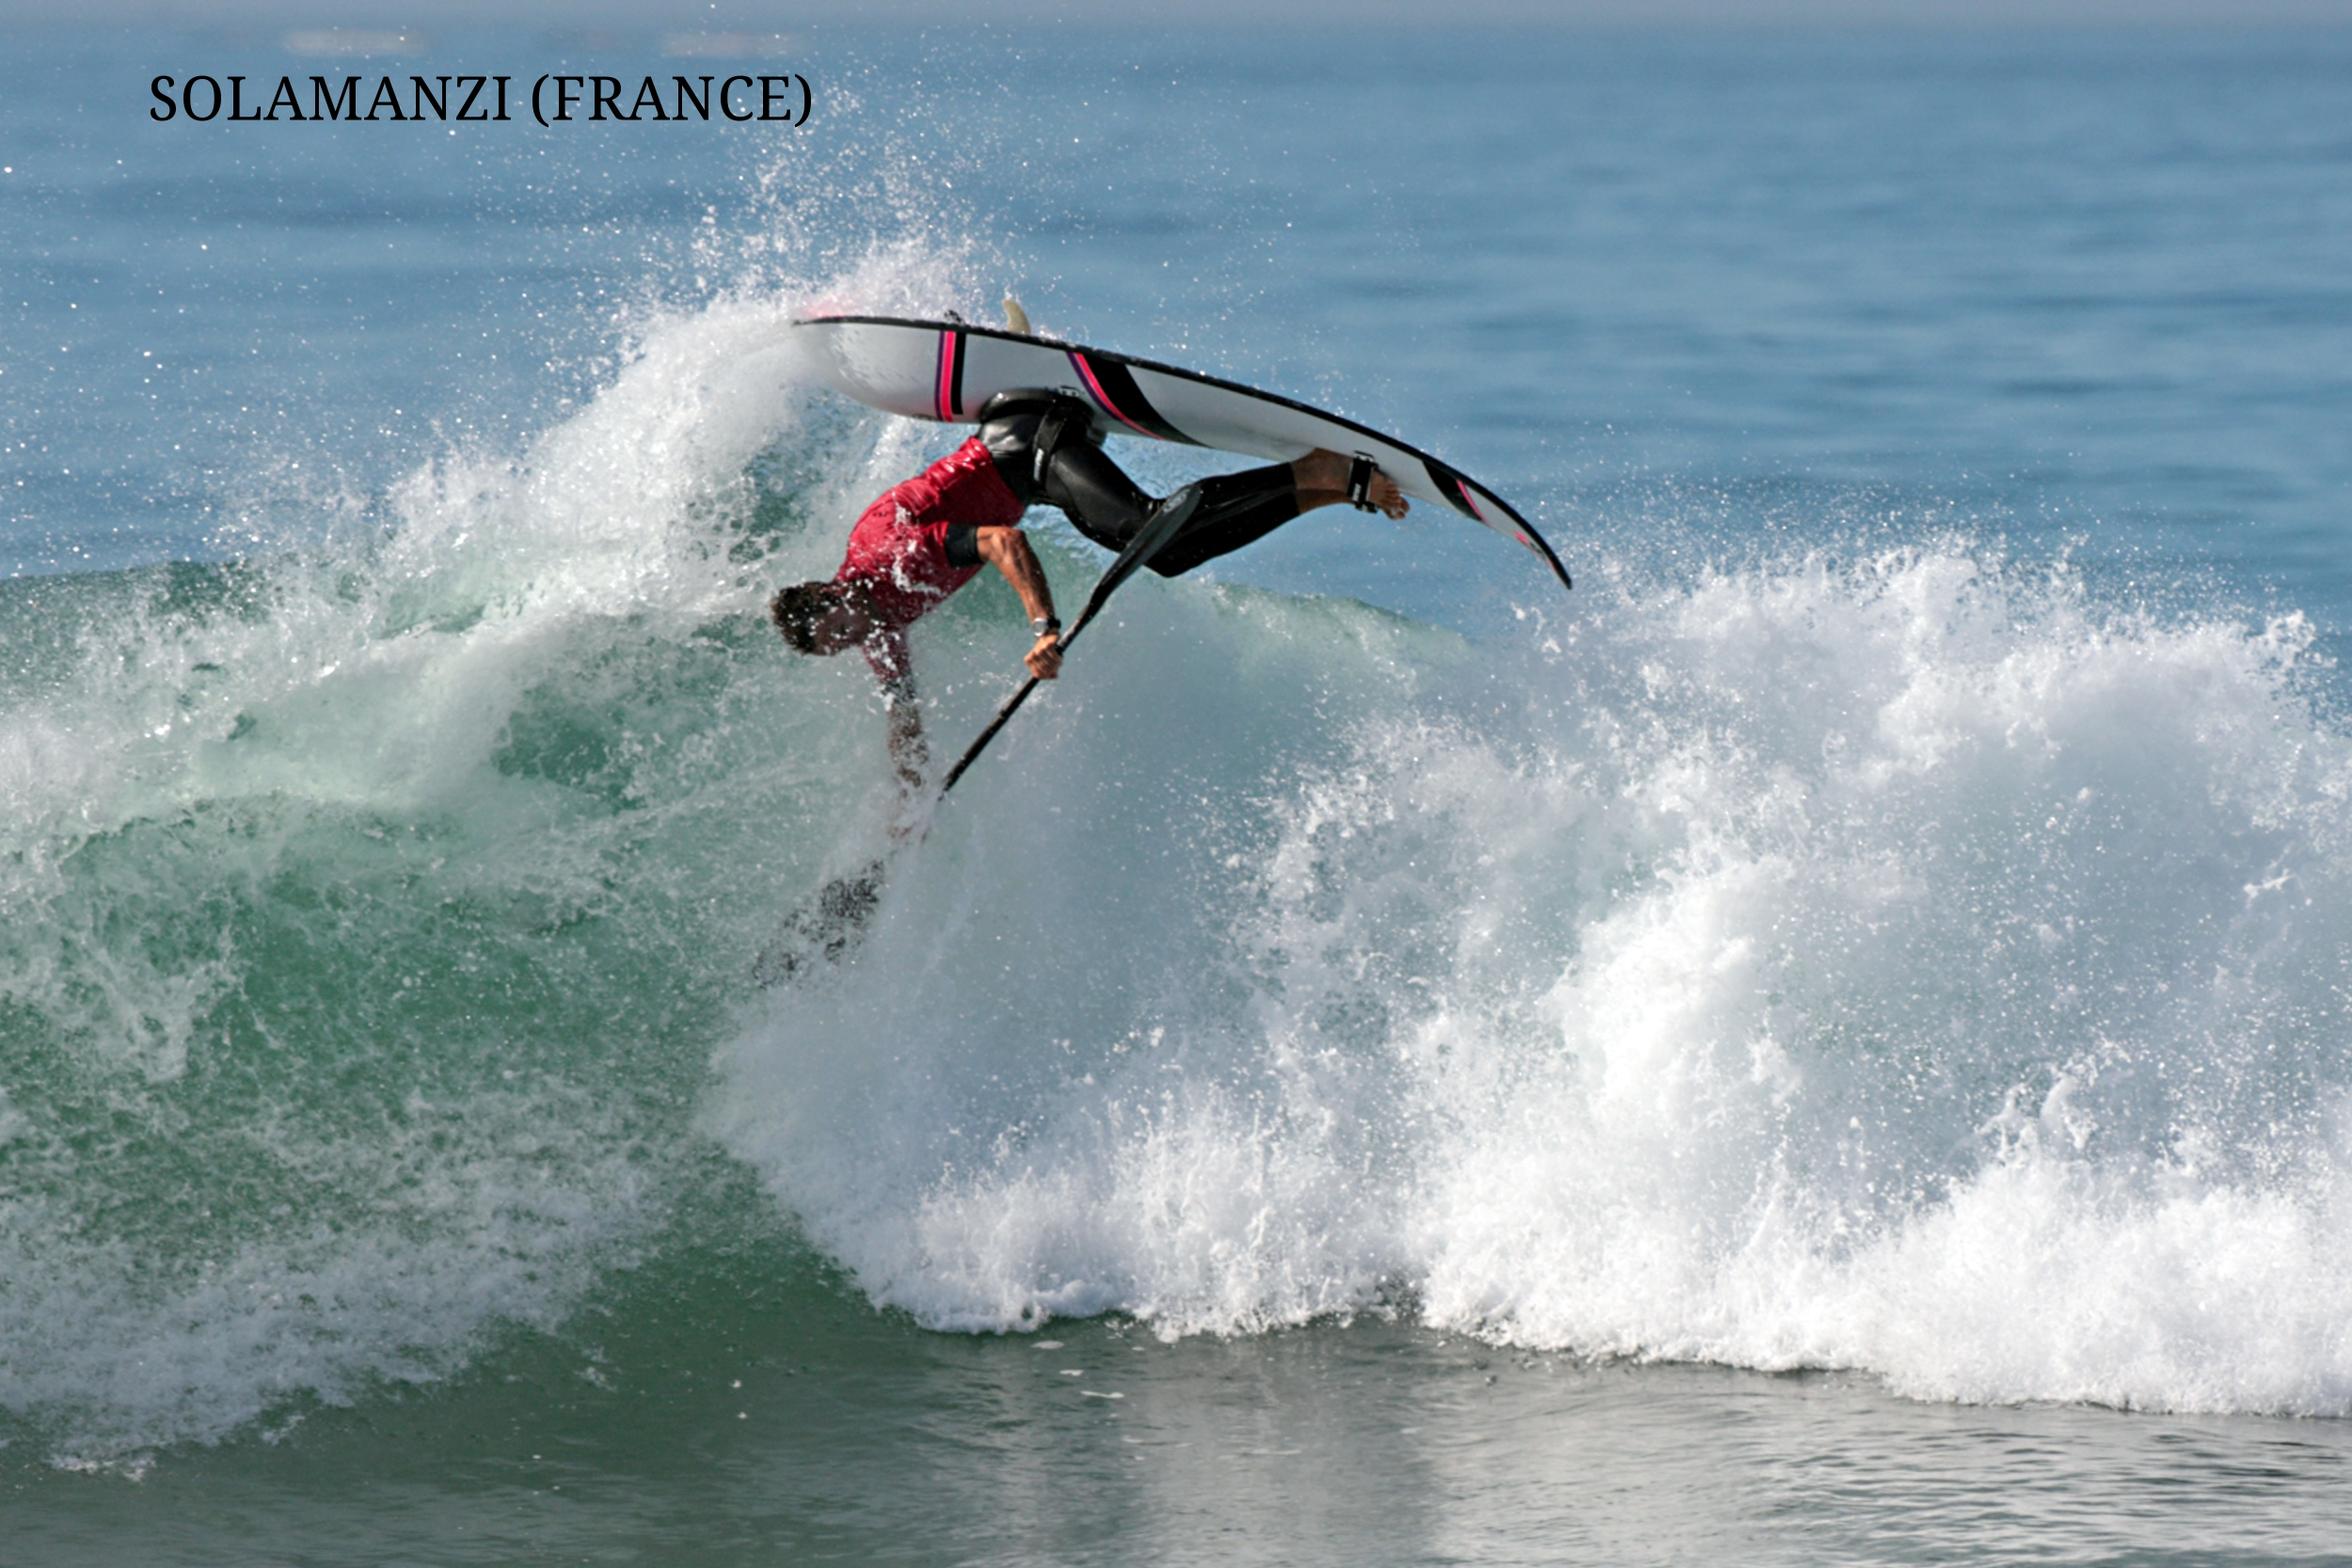 SOLAMANZI (FRANCE) - Showing Mathieu Babarit (FR) - click on the picture to go to Solamanzi website - Photo Copyright Dominick Lemarie Photography